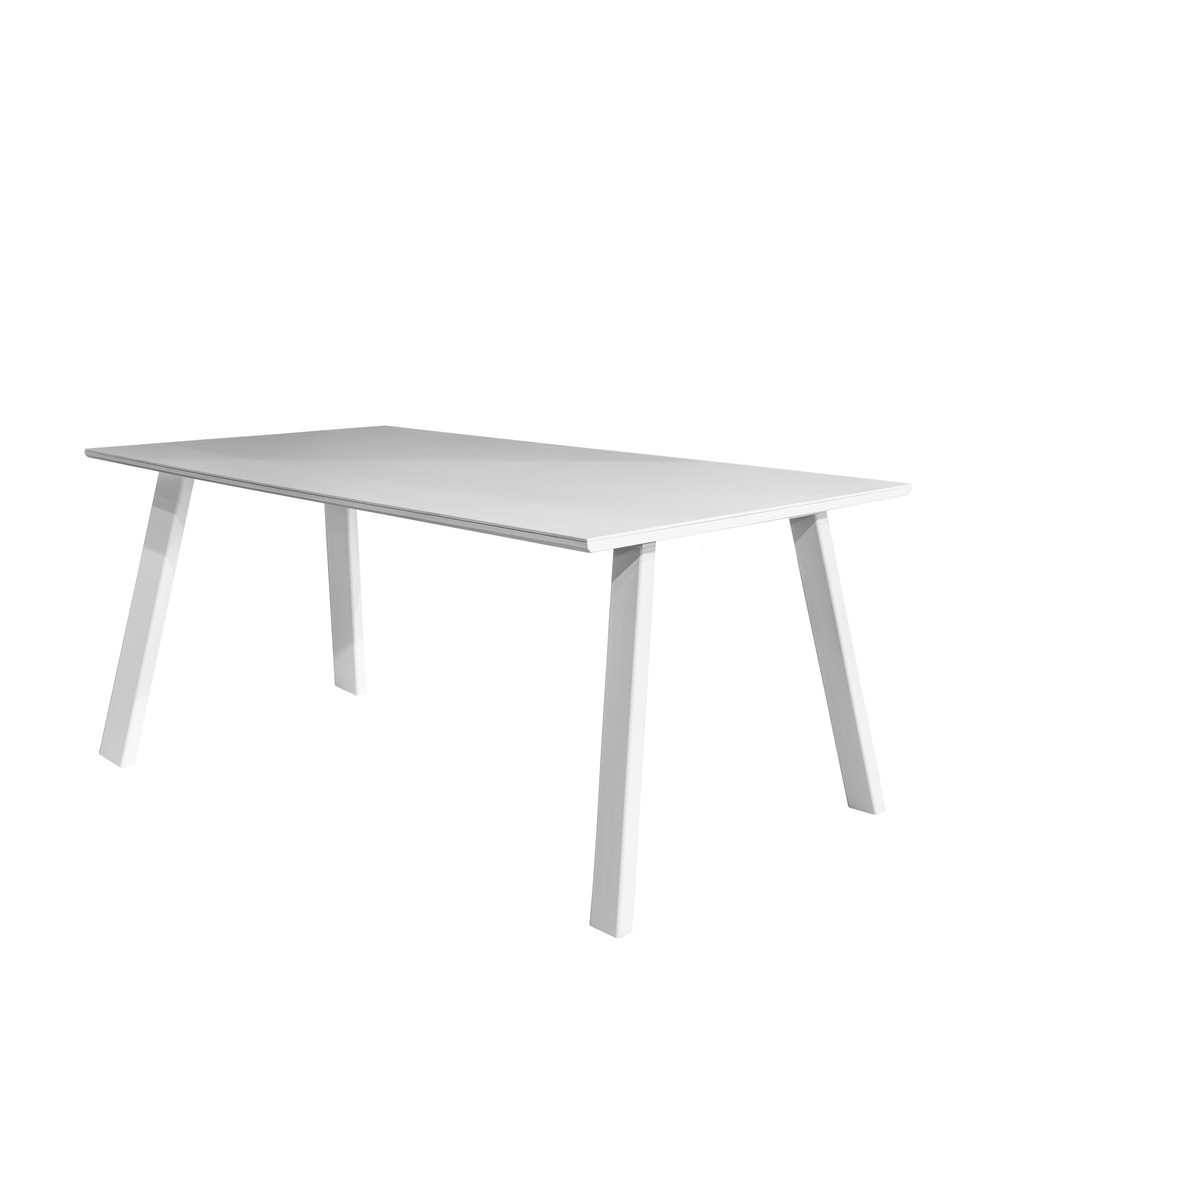 Table Spisa T02 Easy rectangle  140x100x75cm